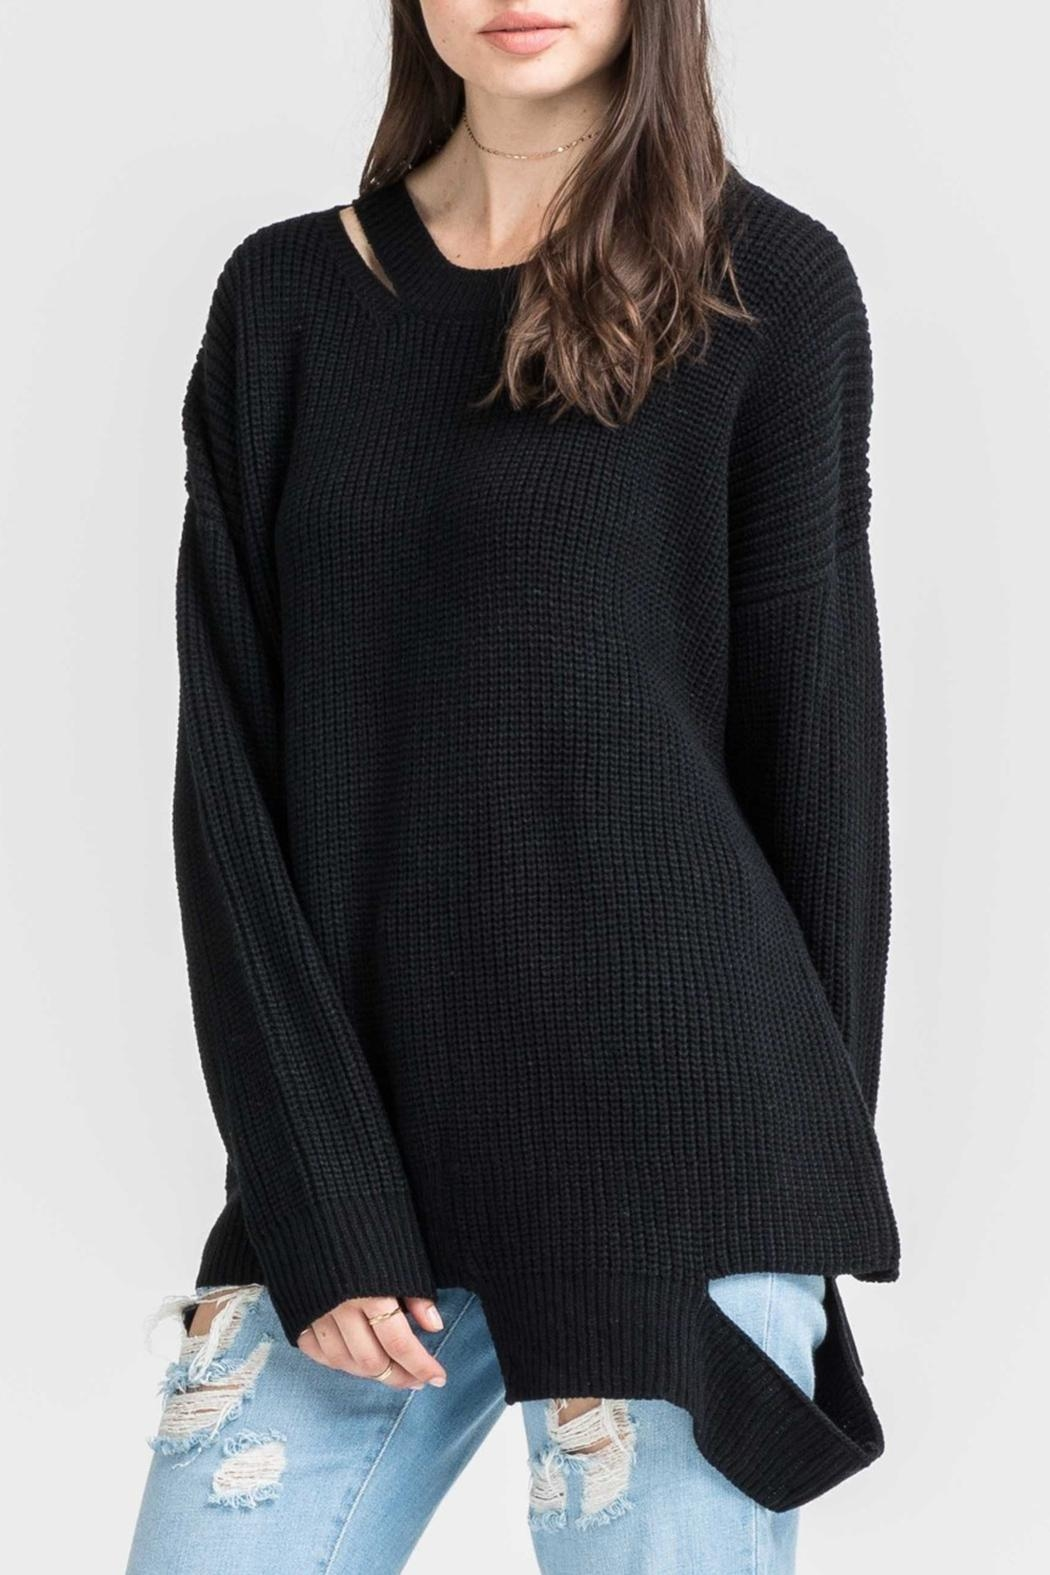 Lush Clothing  Black Slashed Sweater - Main Image